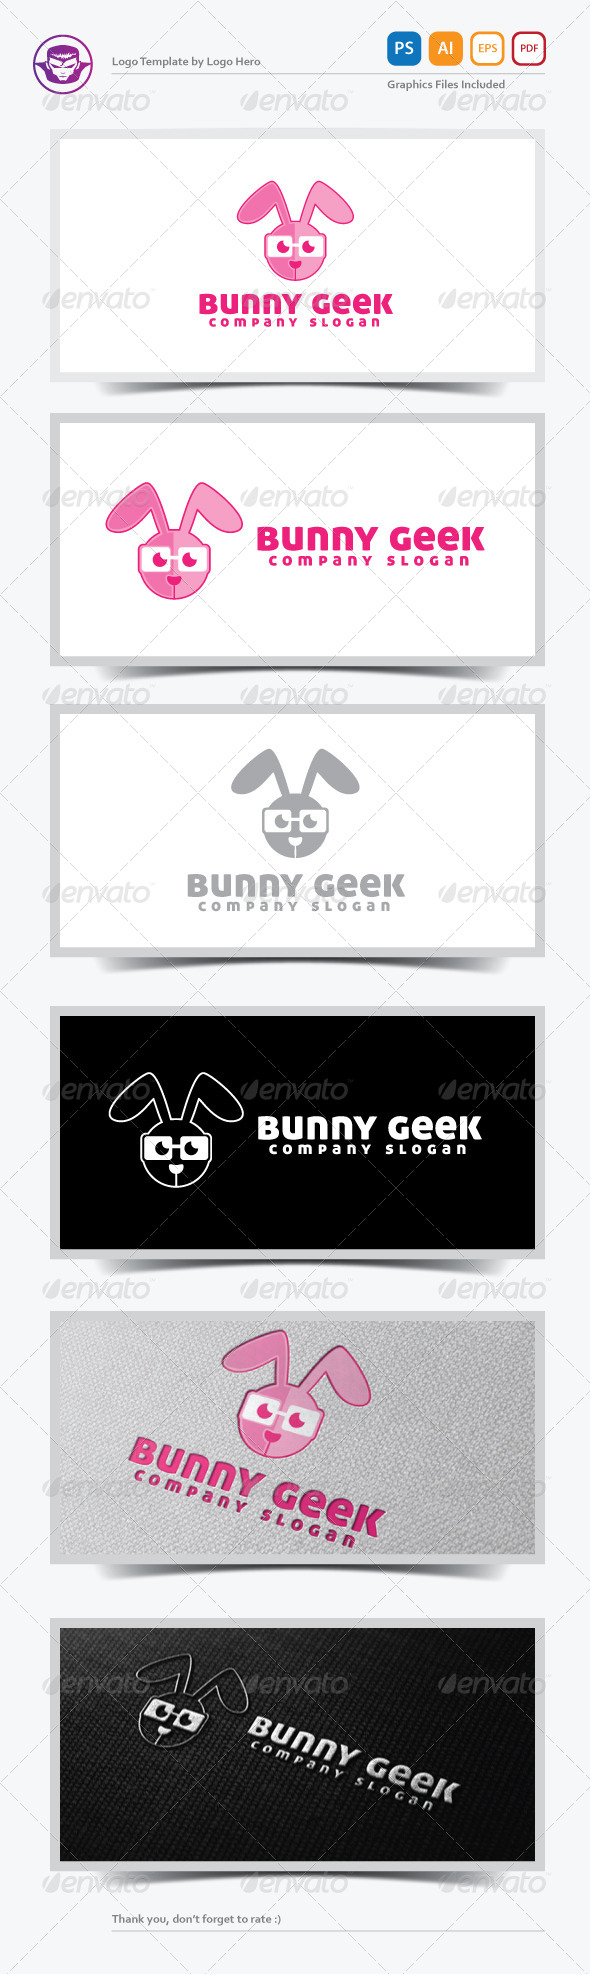 GraphicRiver Bunny Geek Logo Template 5376625